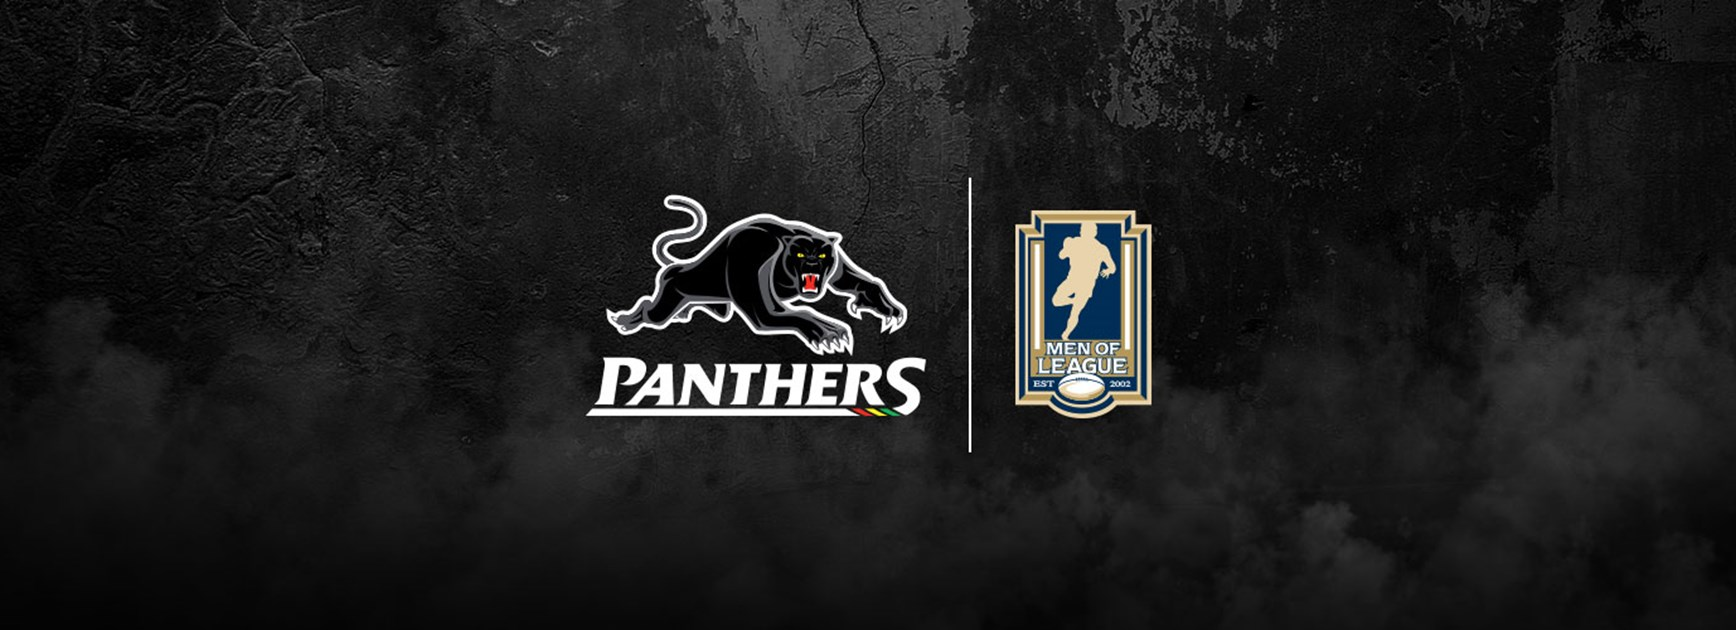 Panthers partners with Men of League Foundation